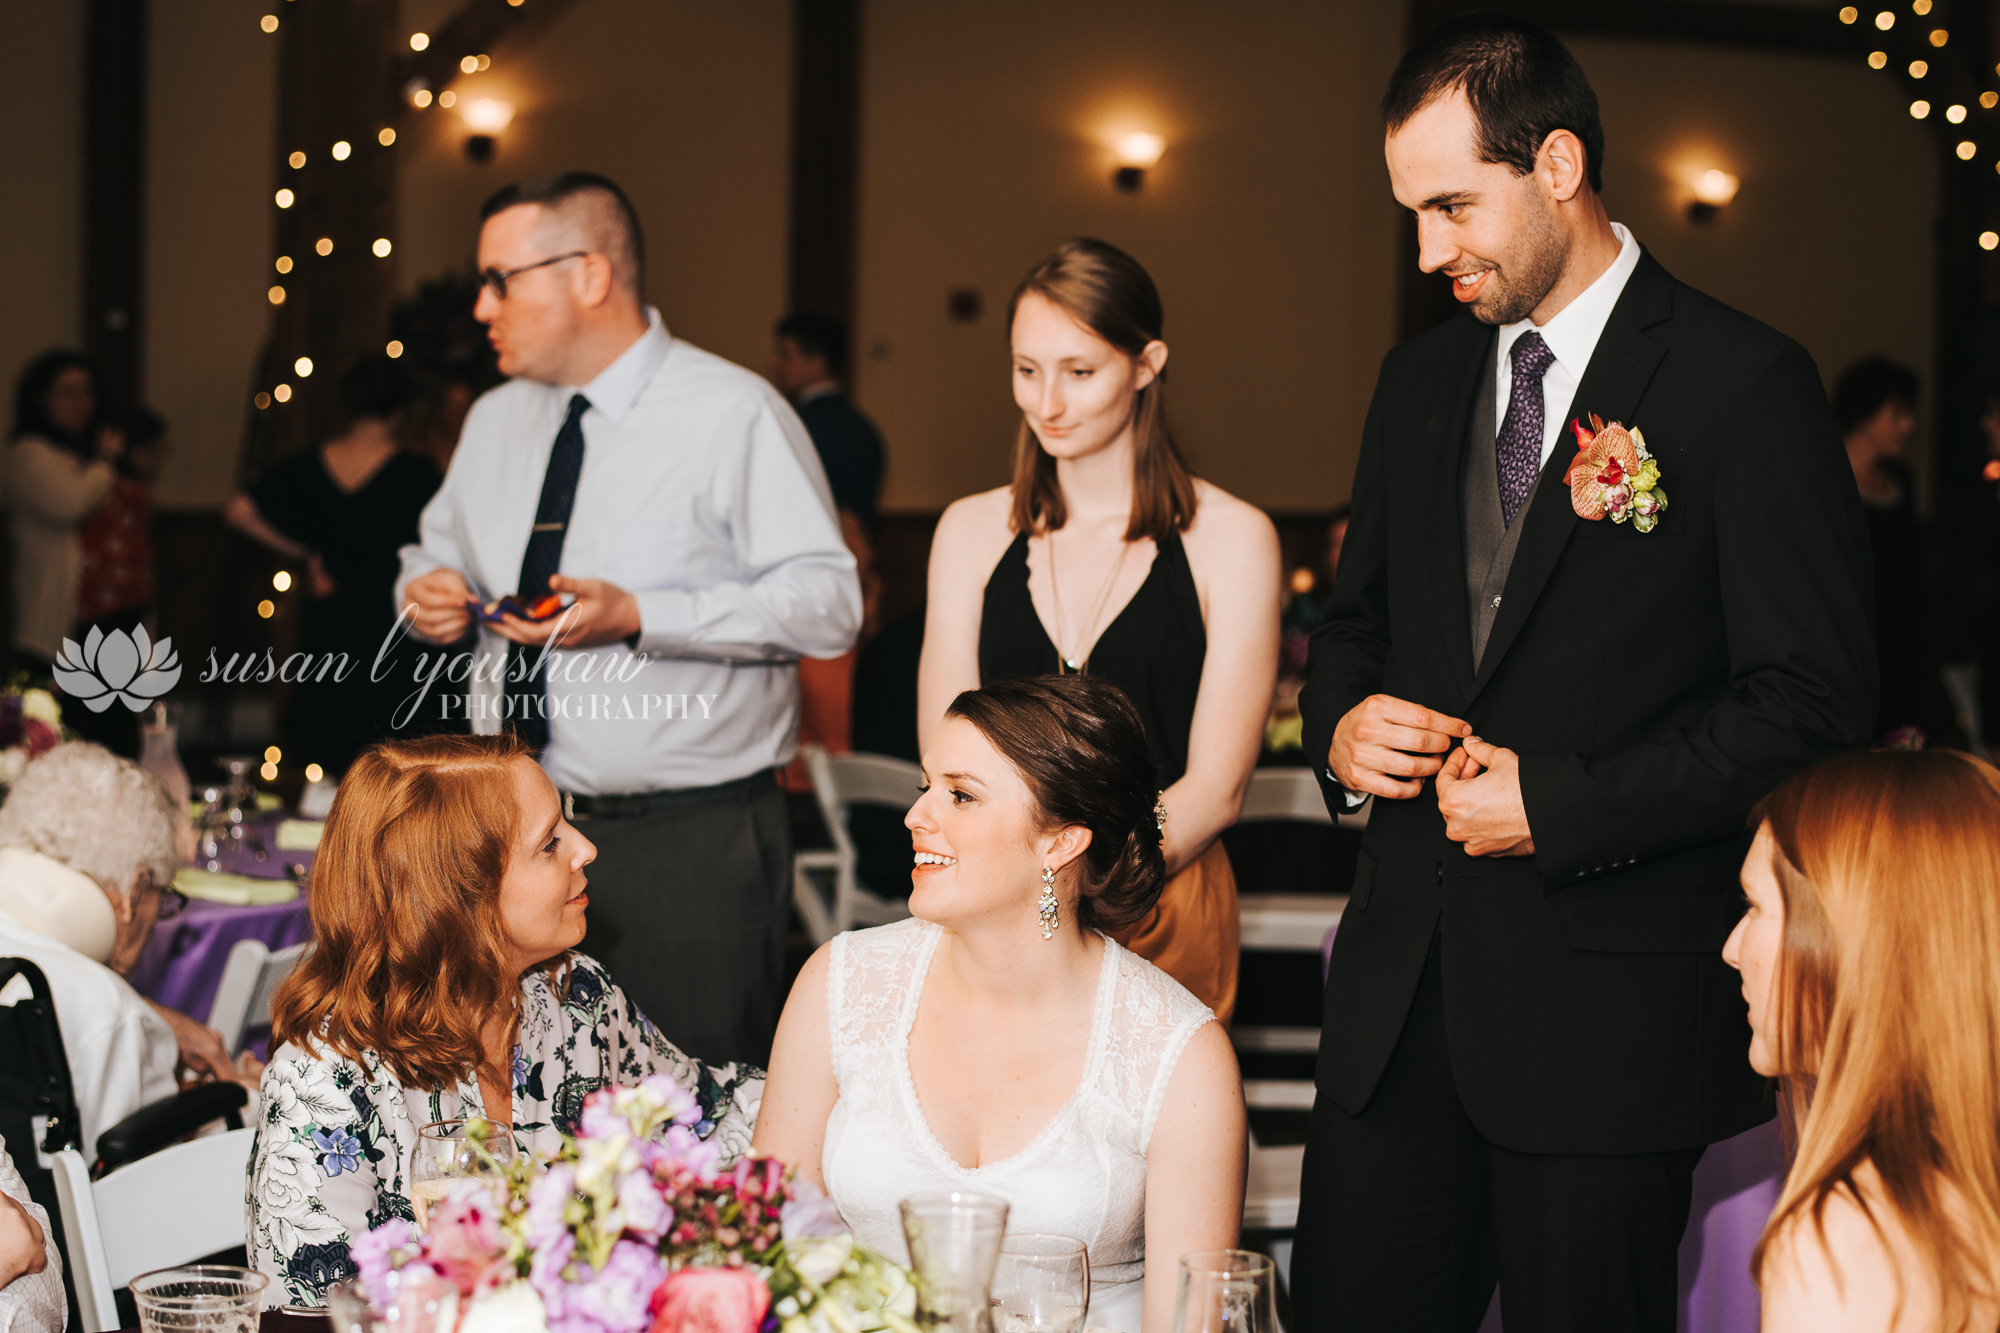 Adena and  Erik Wedding 05-17-2019 SLY Photography-109.jpg